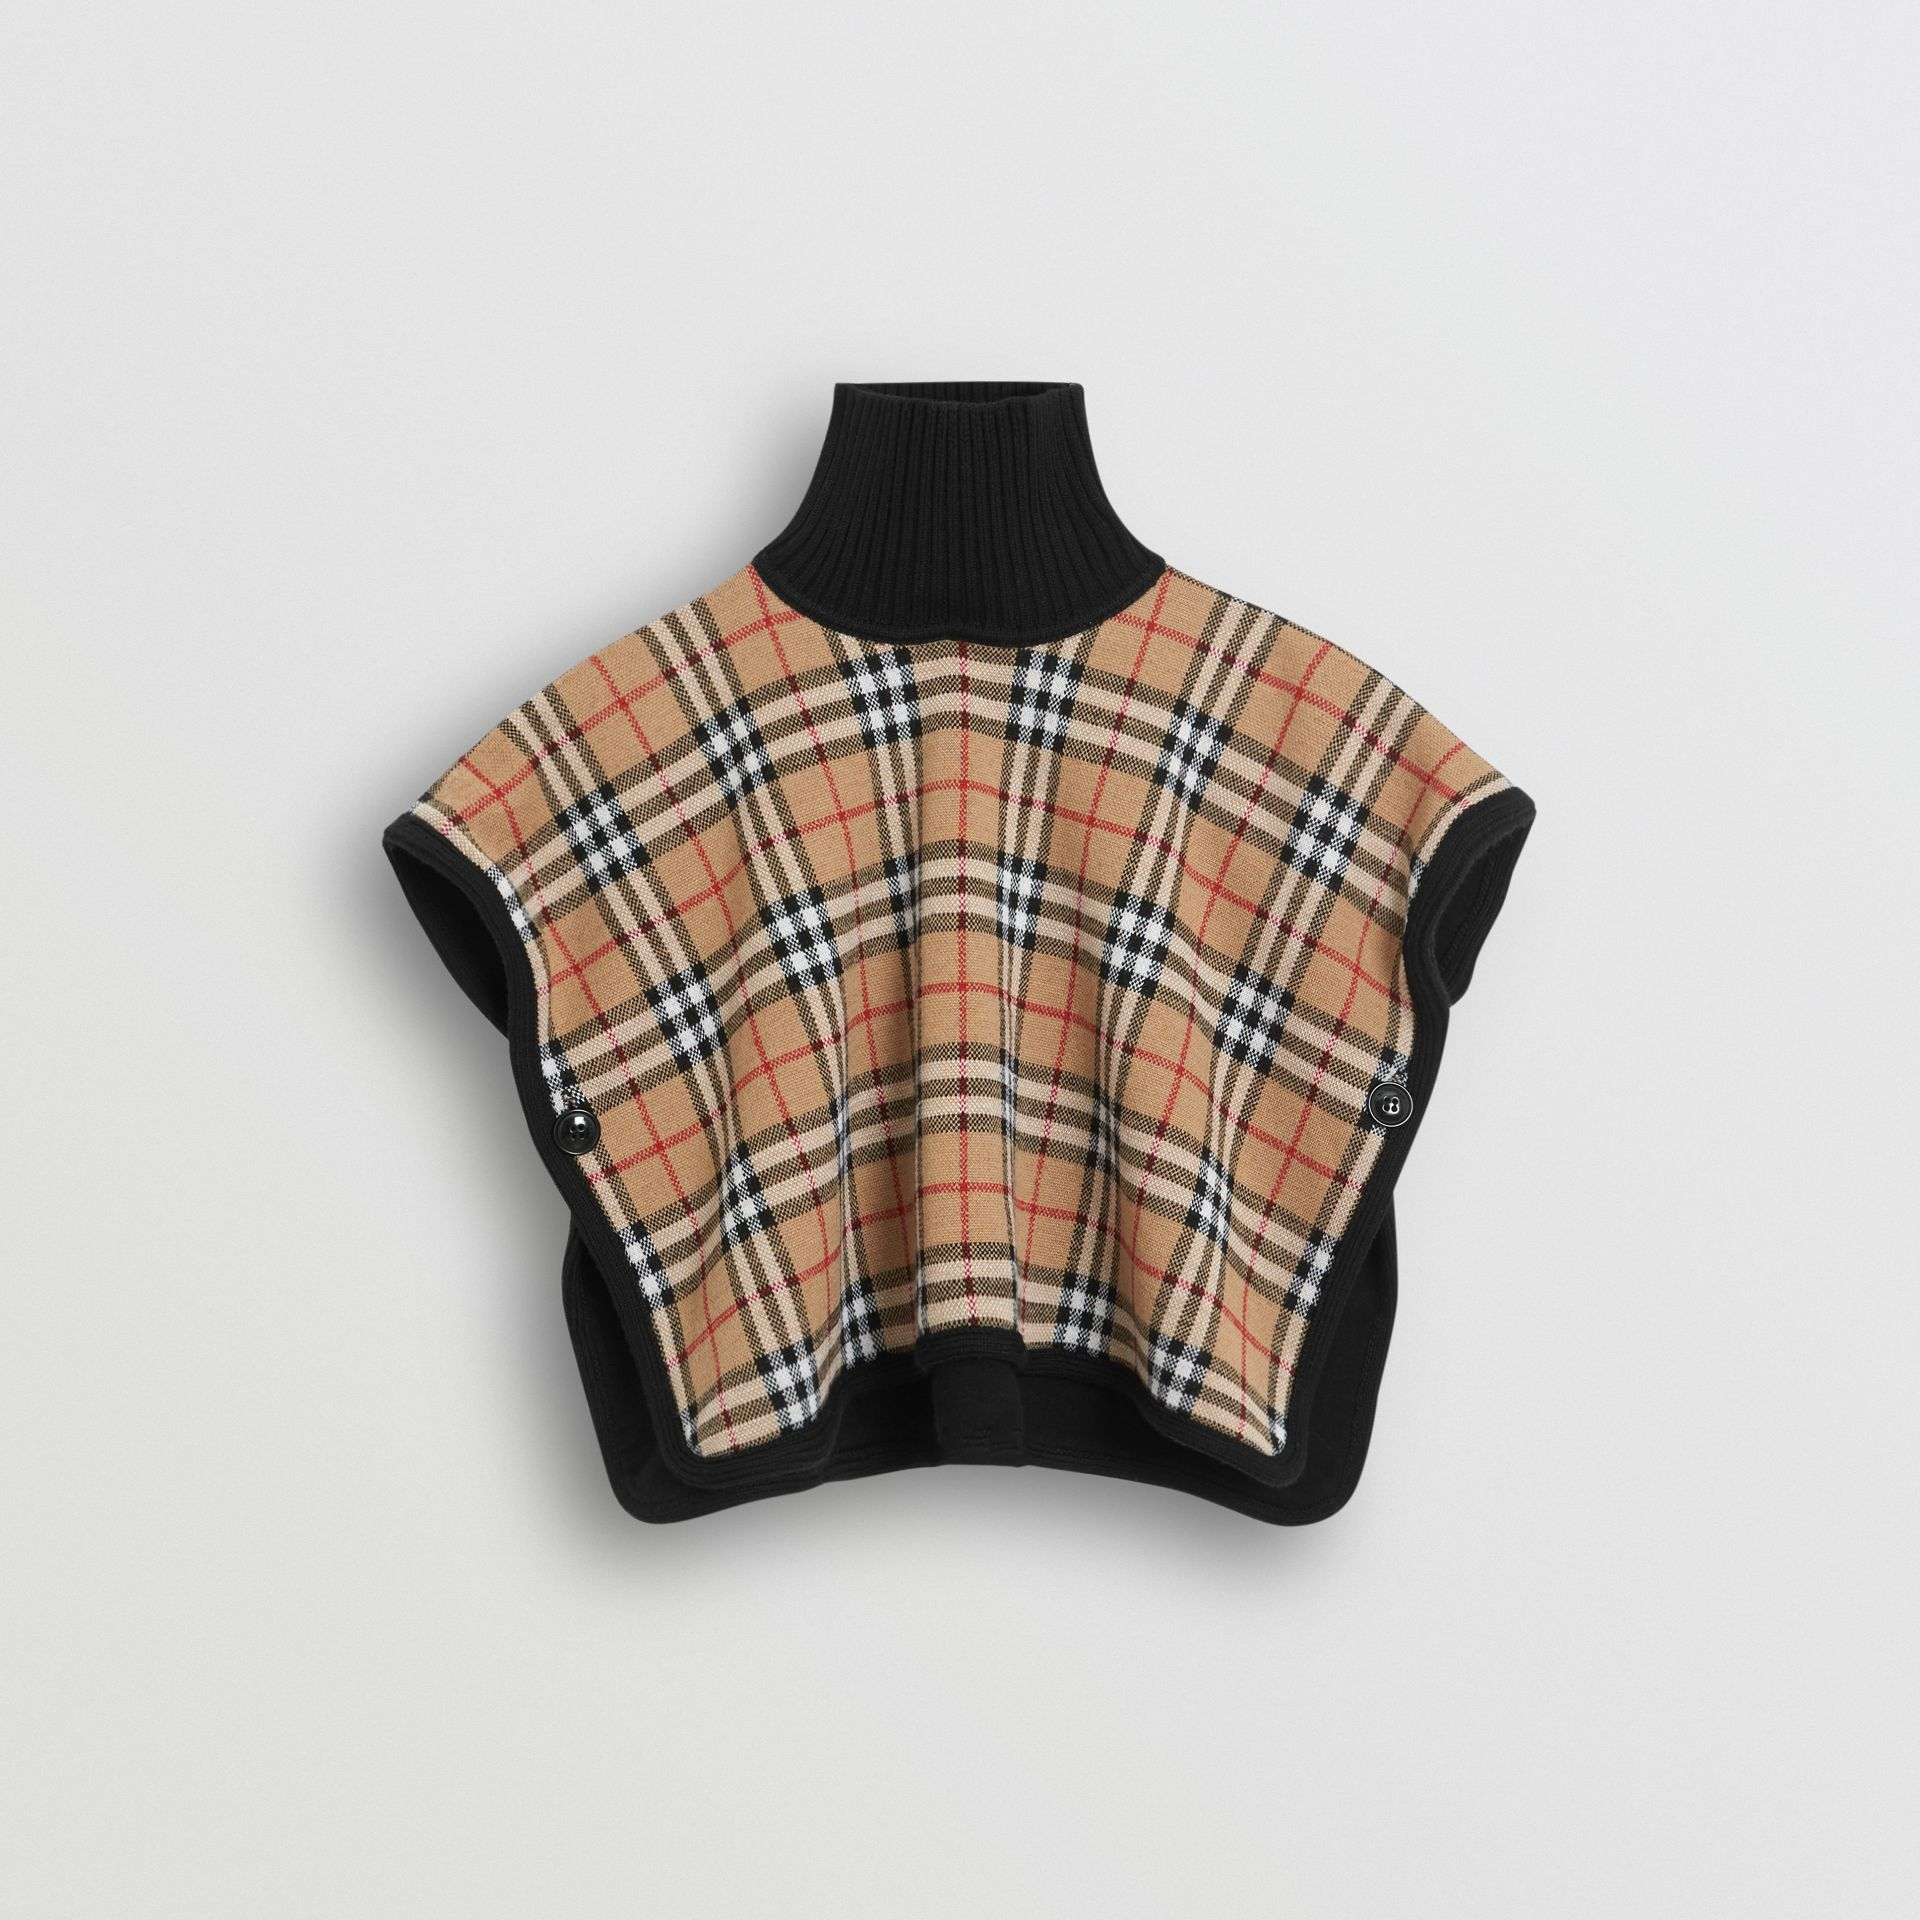 Reversible Vintage Check Merino Wool Jacquard Poncho in Black | Burberry United States - gallery image 4